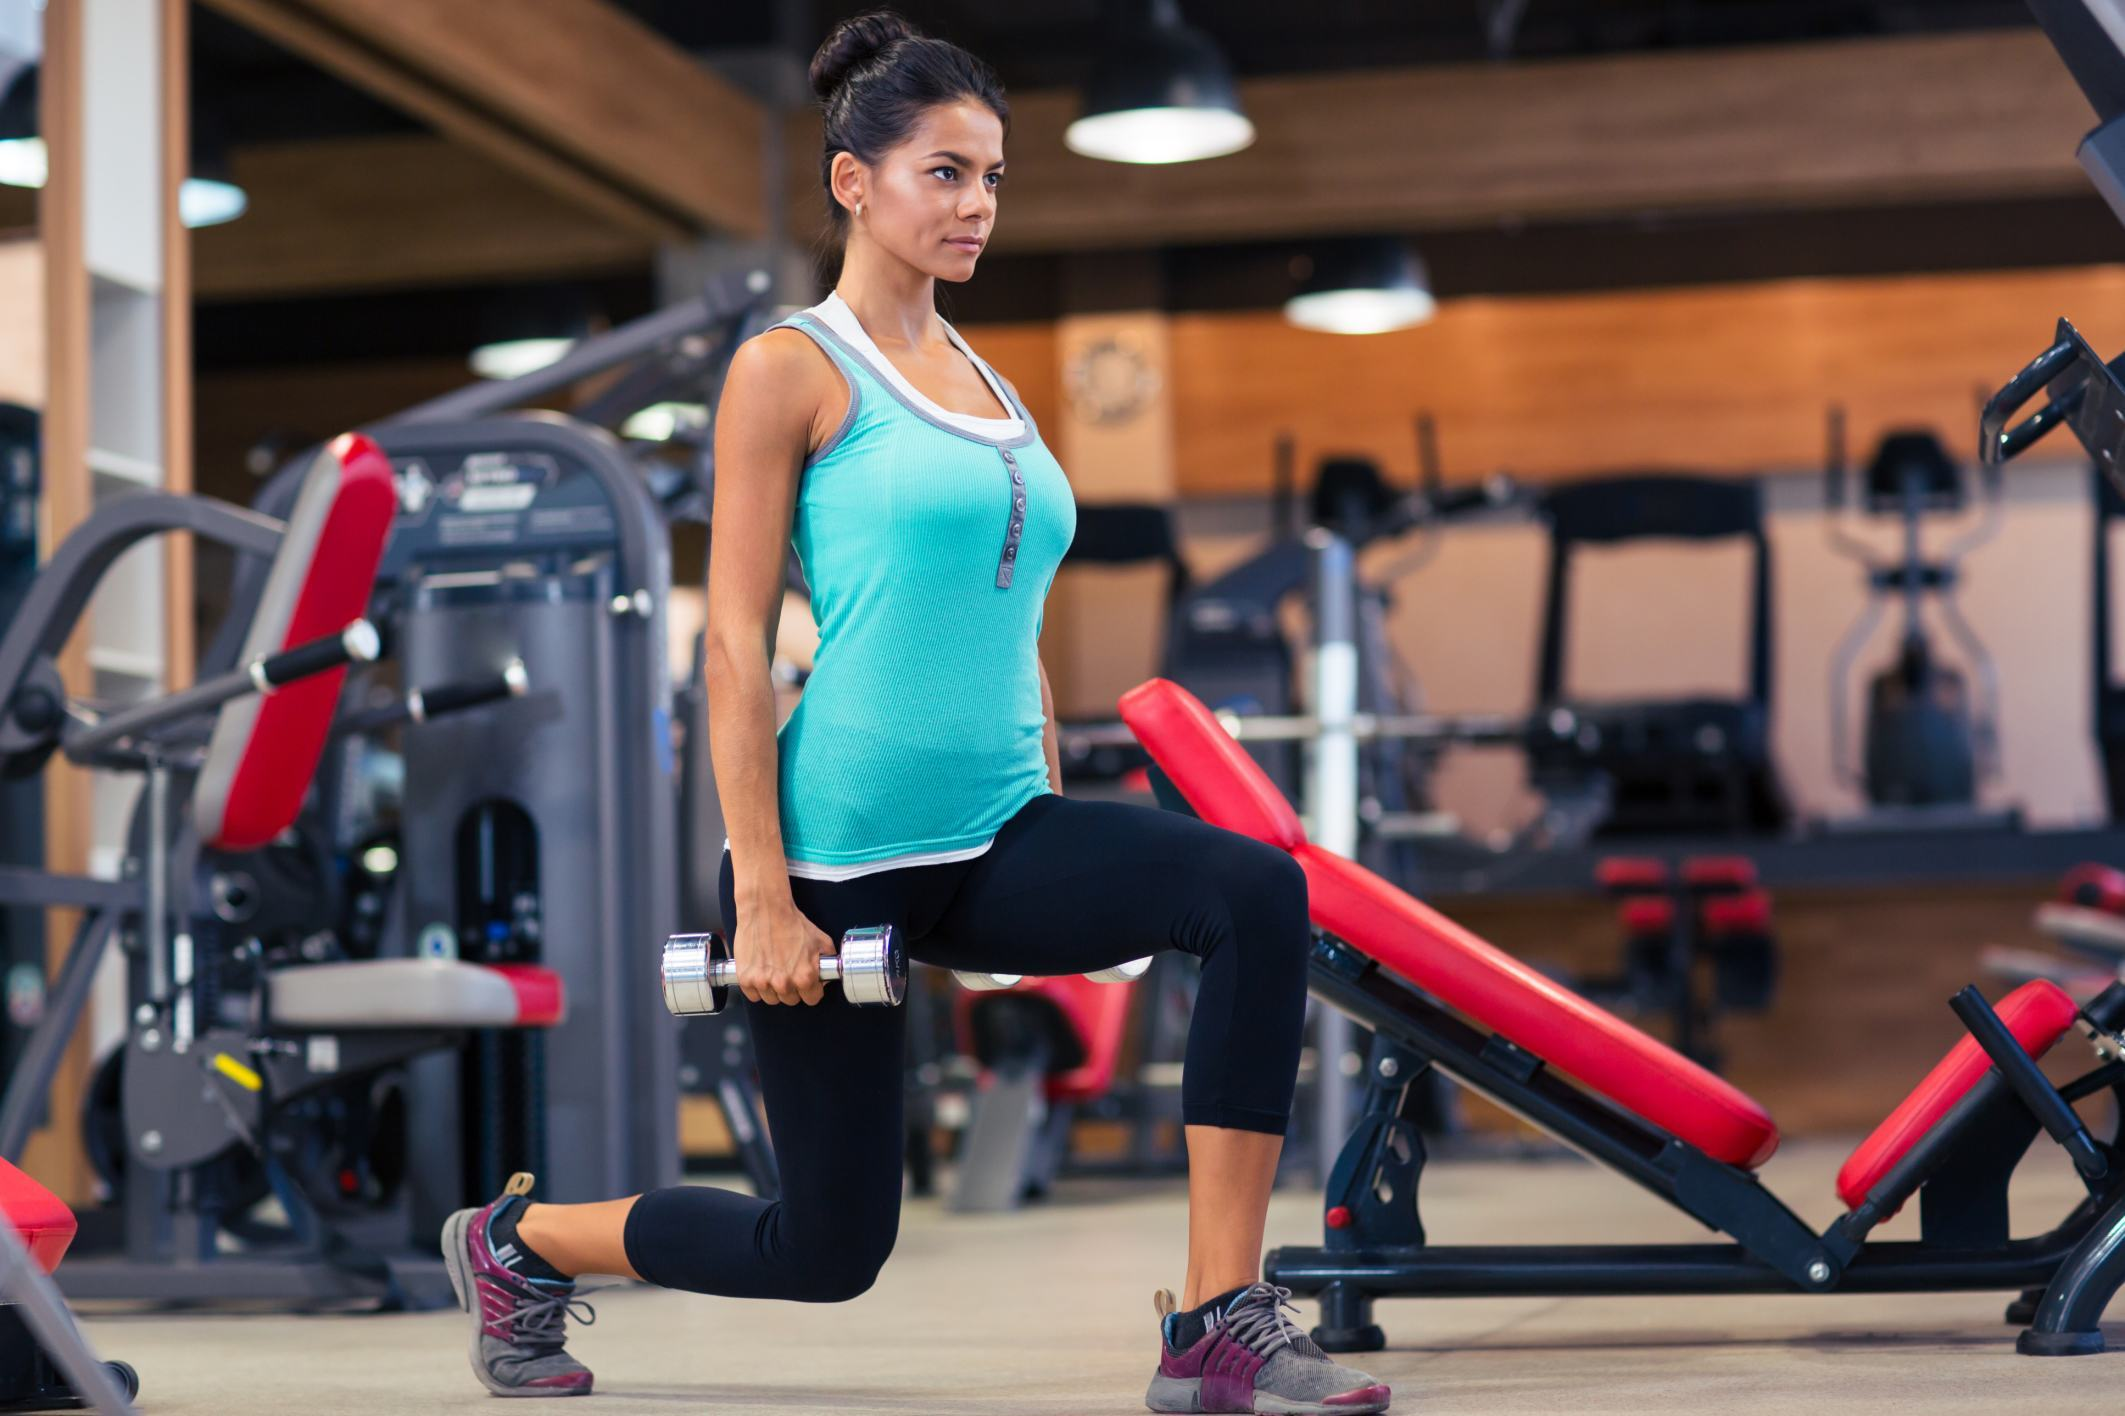 Woman workout with dumbbells